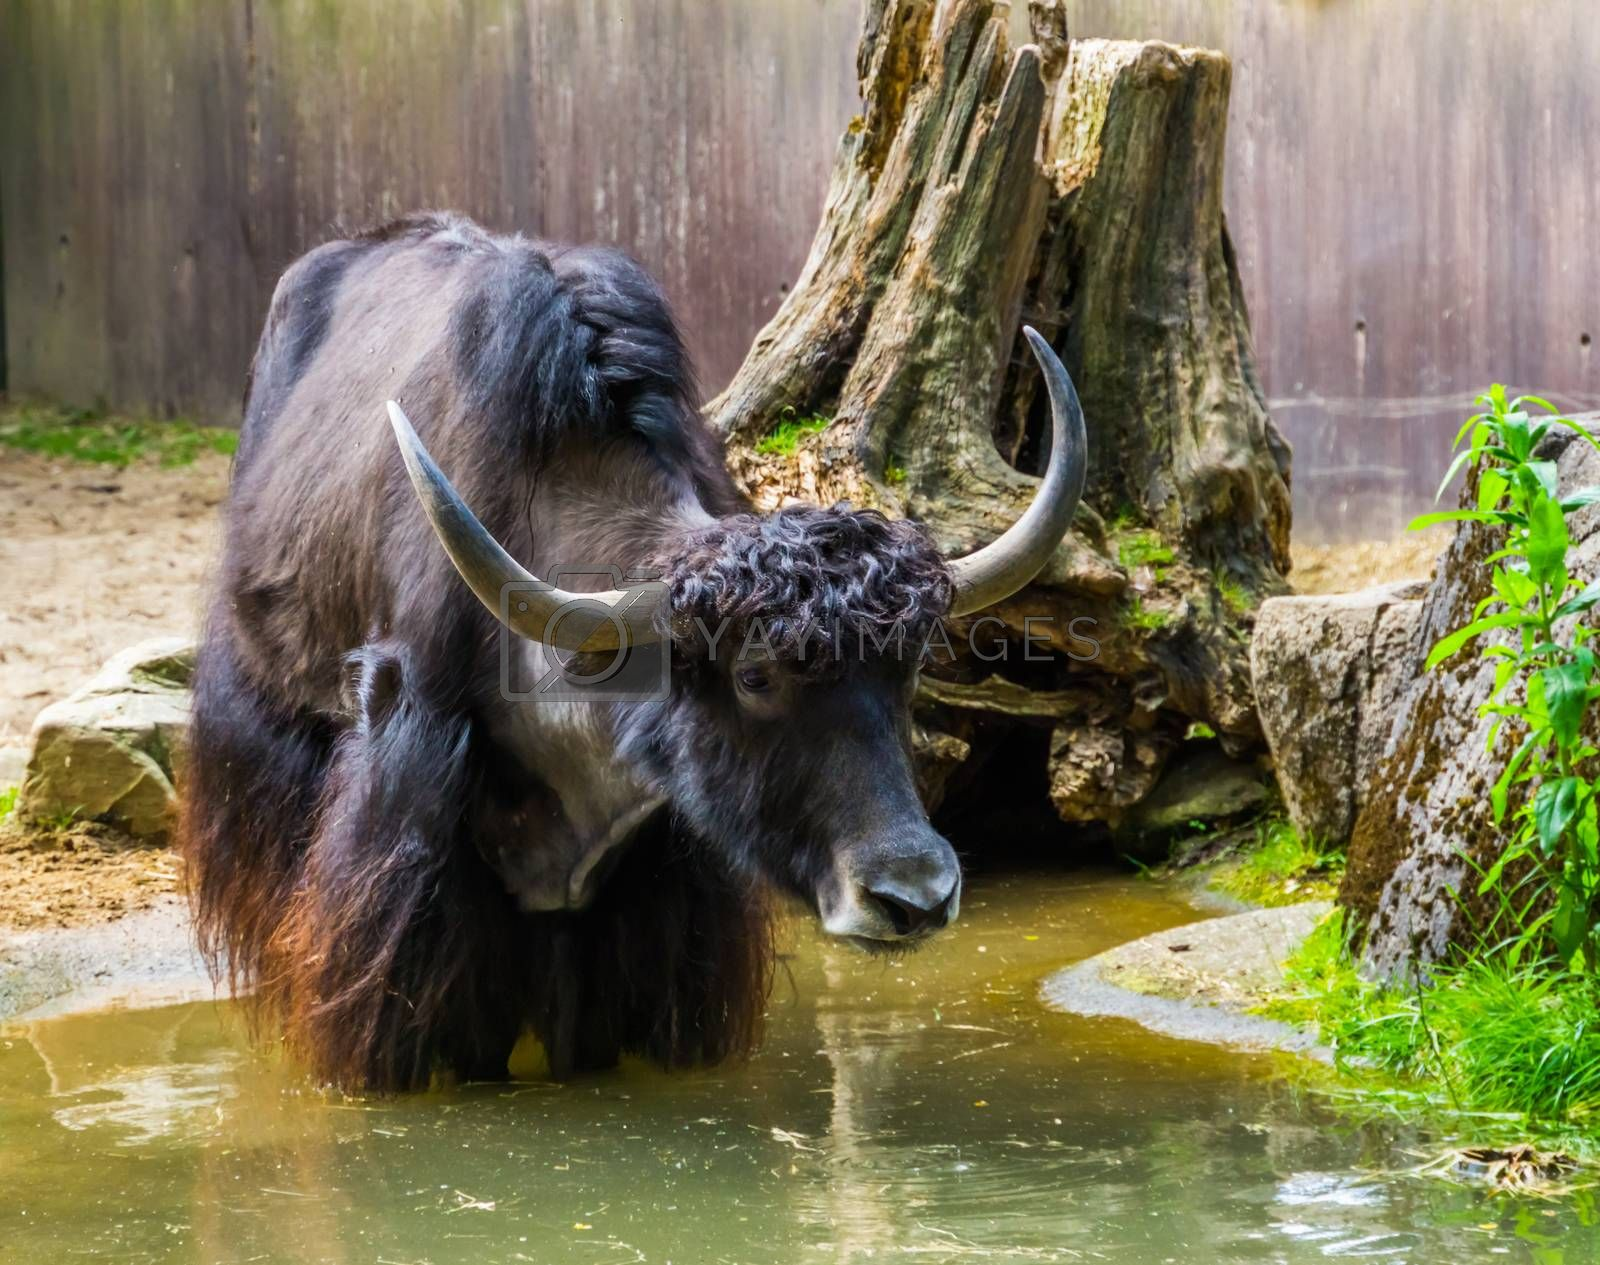 closeup of a wild yak taking a bath in a water puddle, tropical cattle specie from the himalaya mountains of Asia